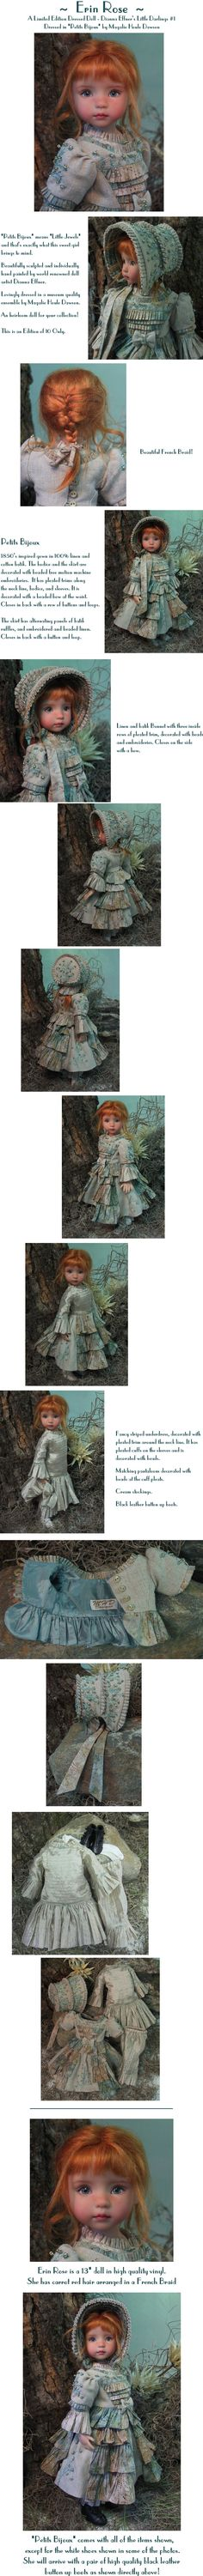 TheDollStudio.Com - Little darlings by Dianna Effner